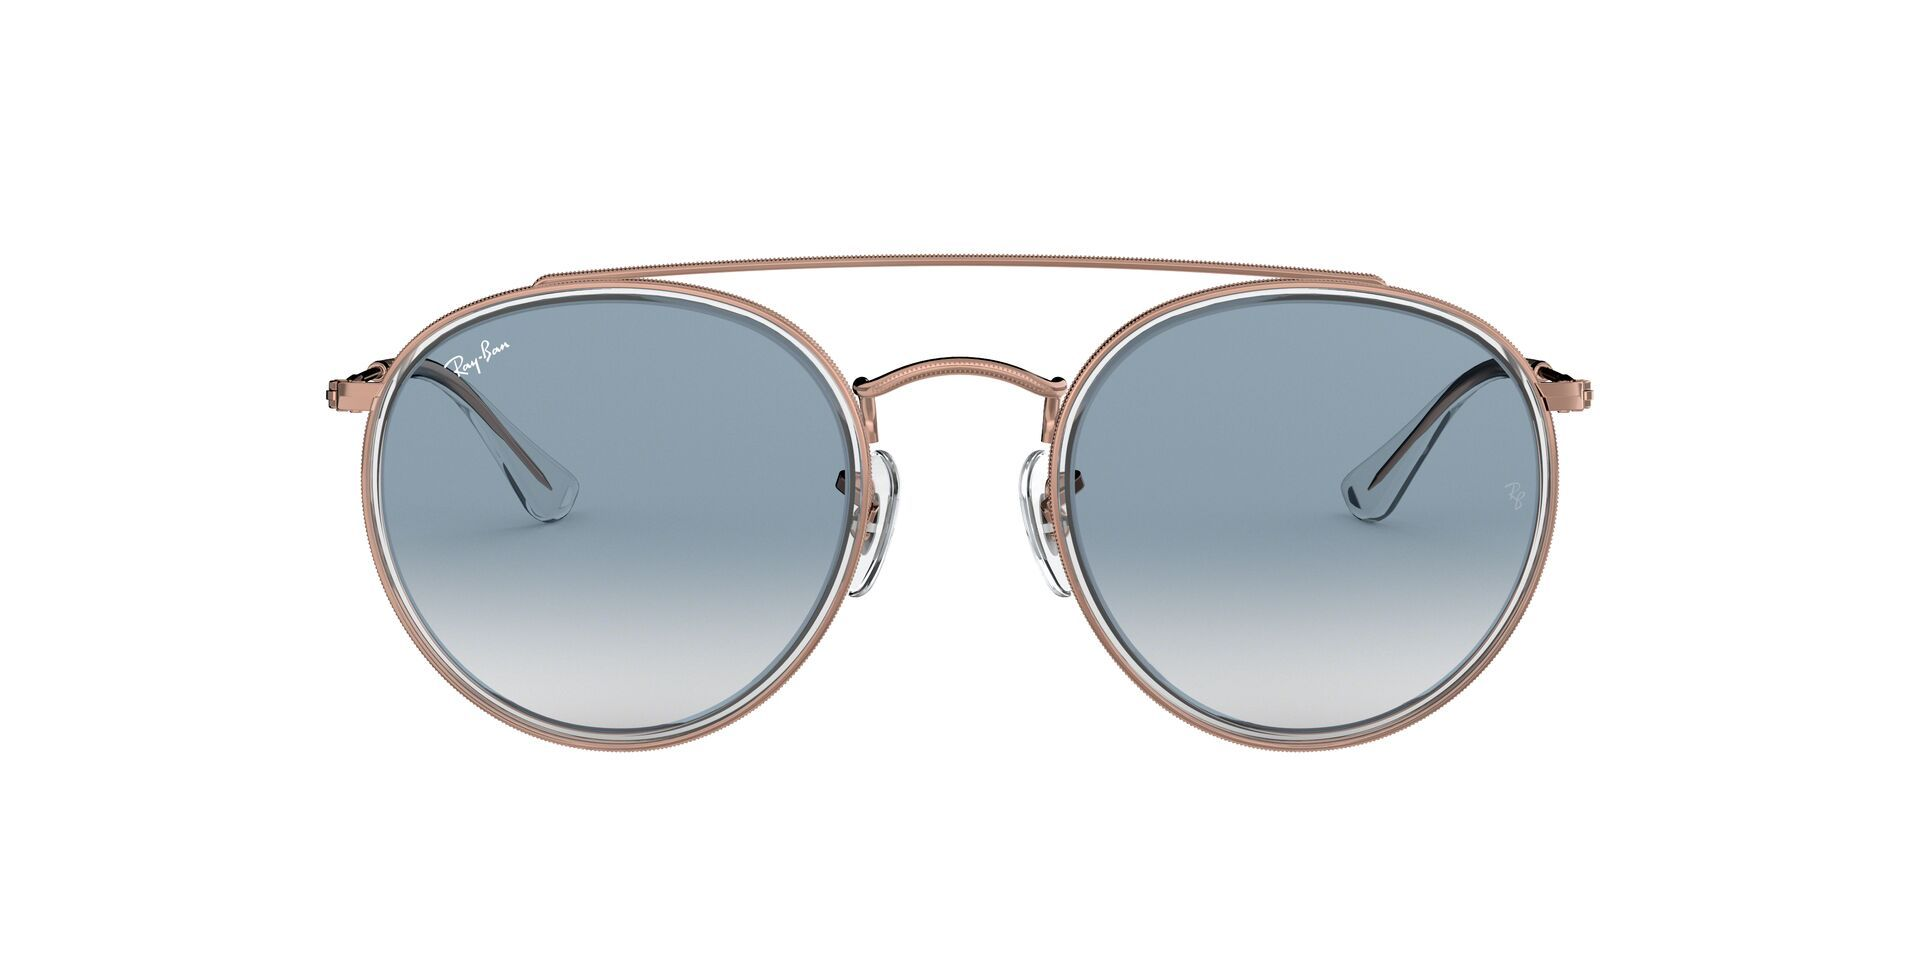 Ray Ban - RB3647N Rose Gold Oval Unisex Sunglasses - 51mm-Sunglasses-Designer Eyes